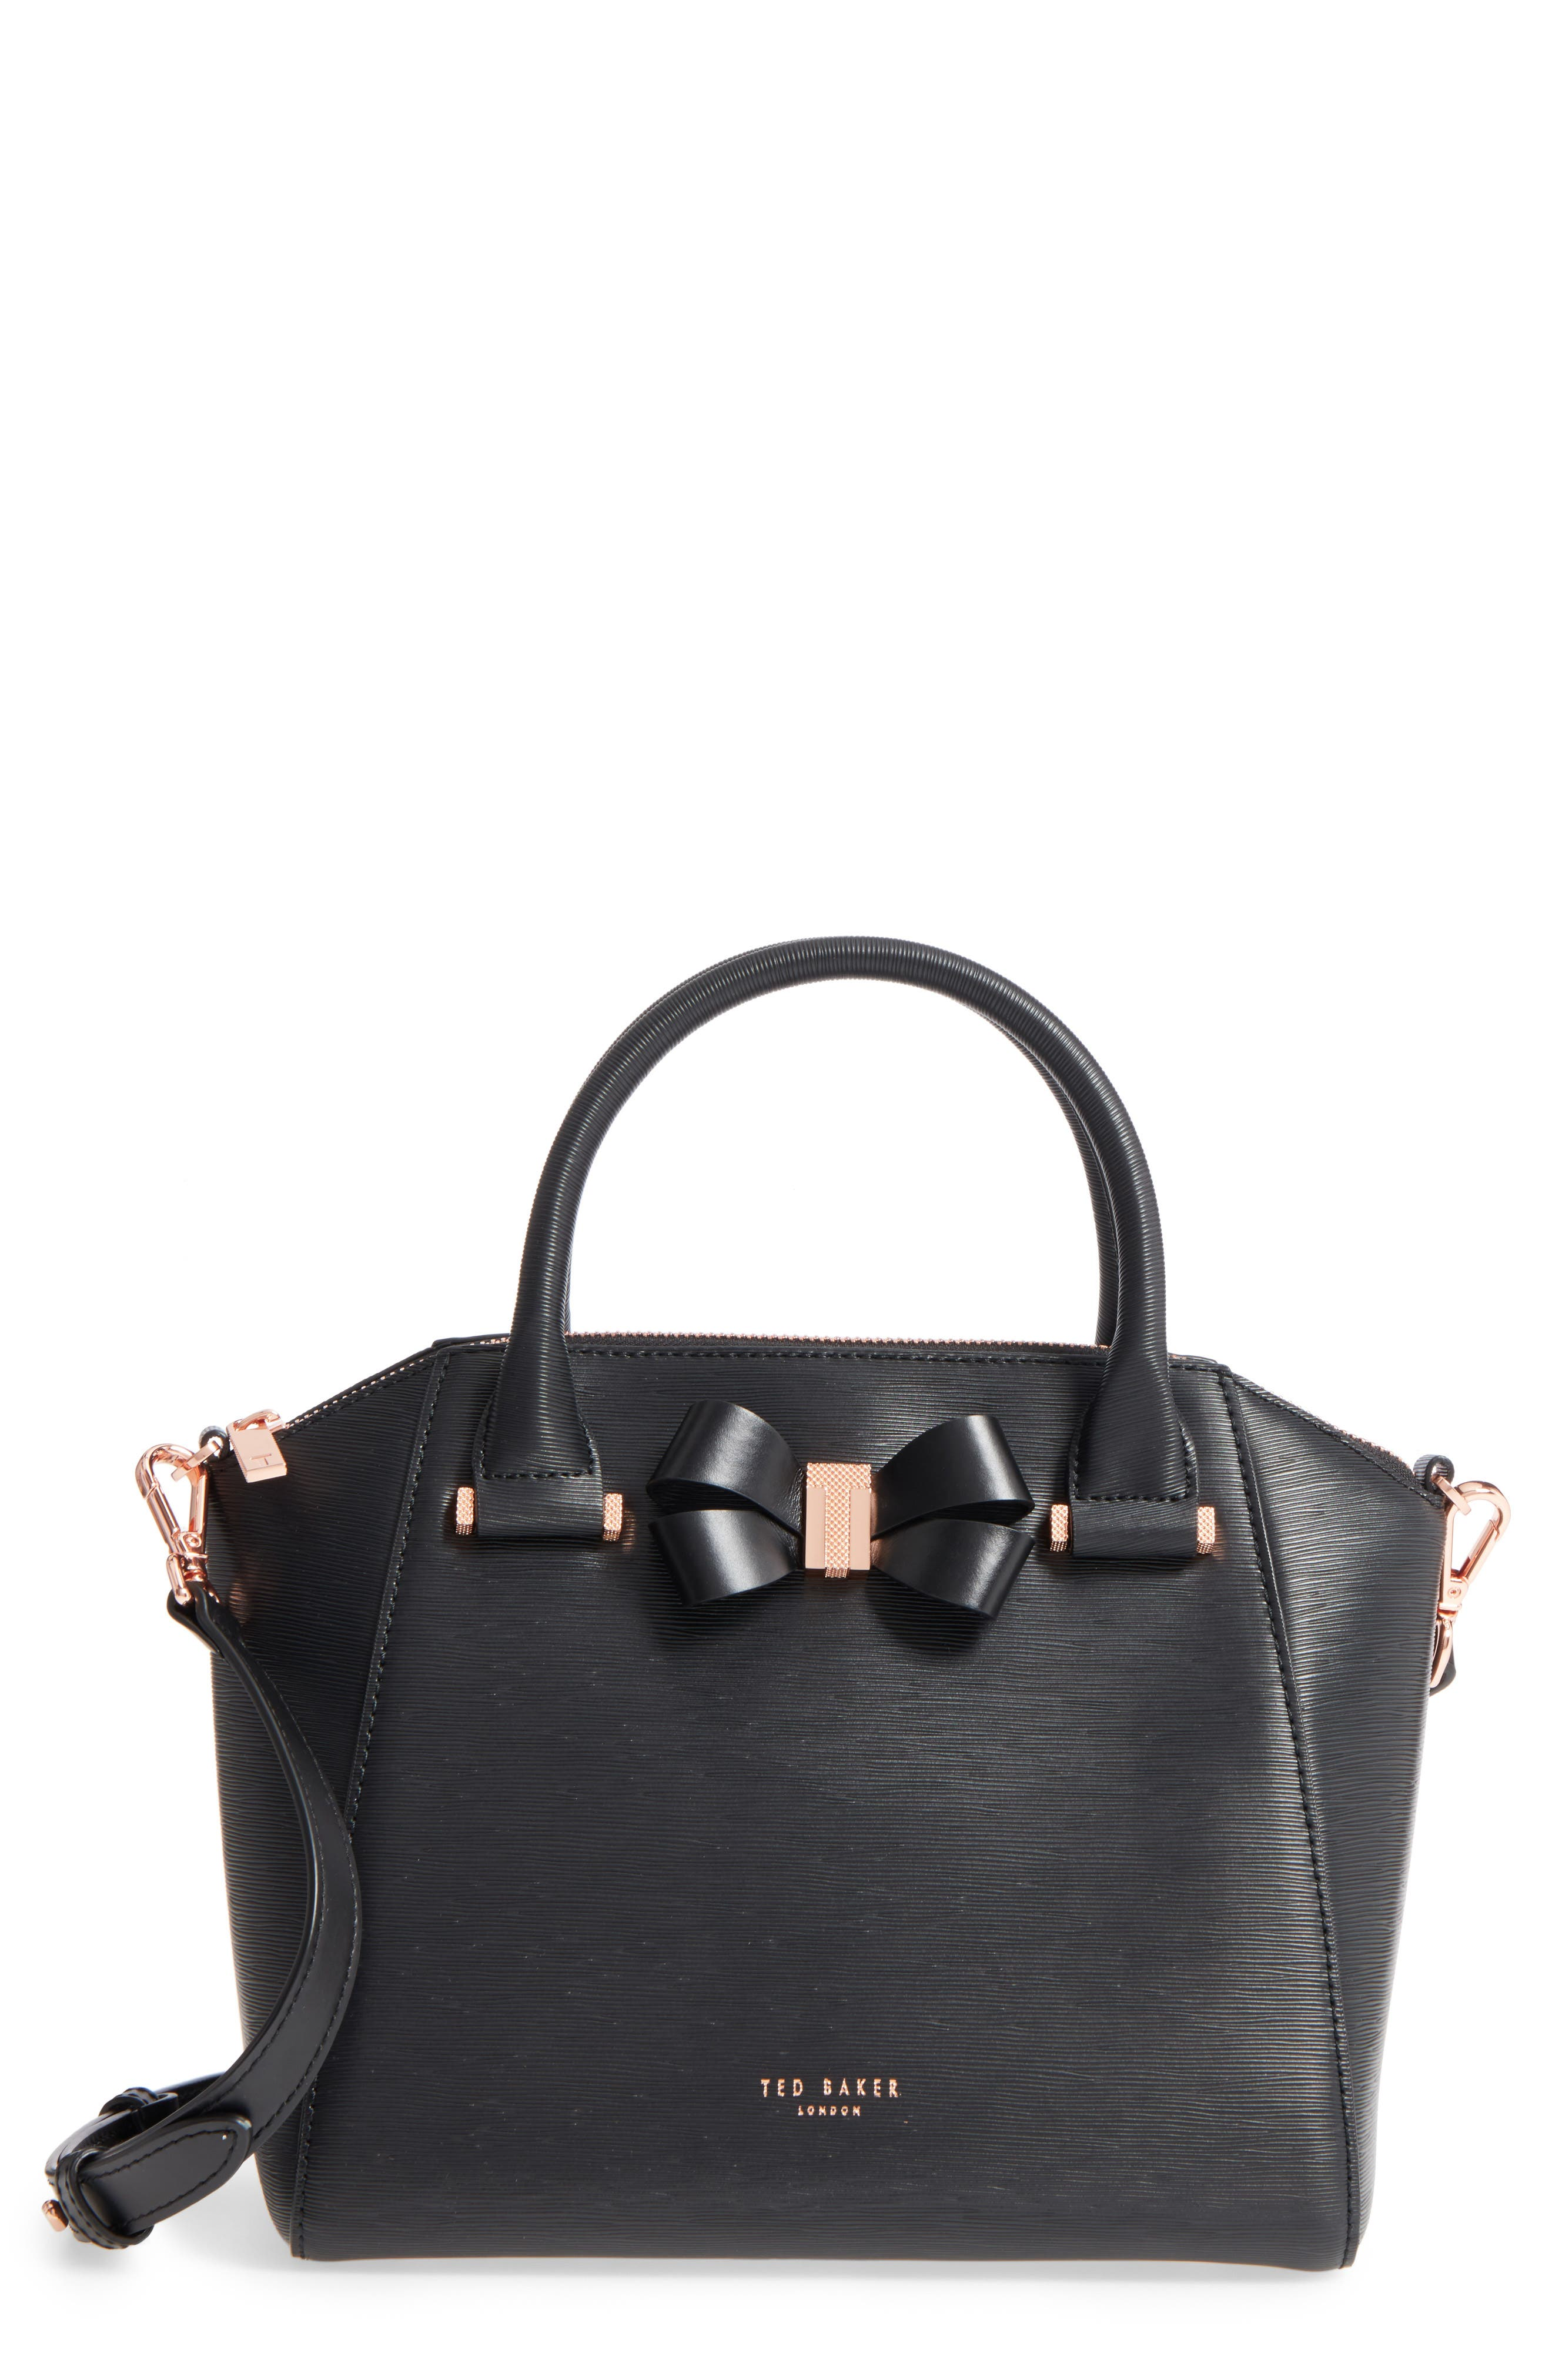 Alternate Image 1 Selected - Ted Baker London Charmea Bow Small Leather Tote